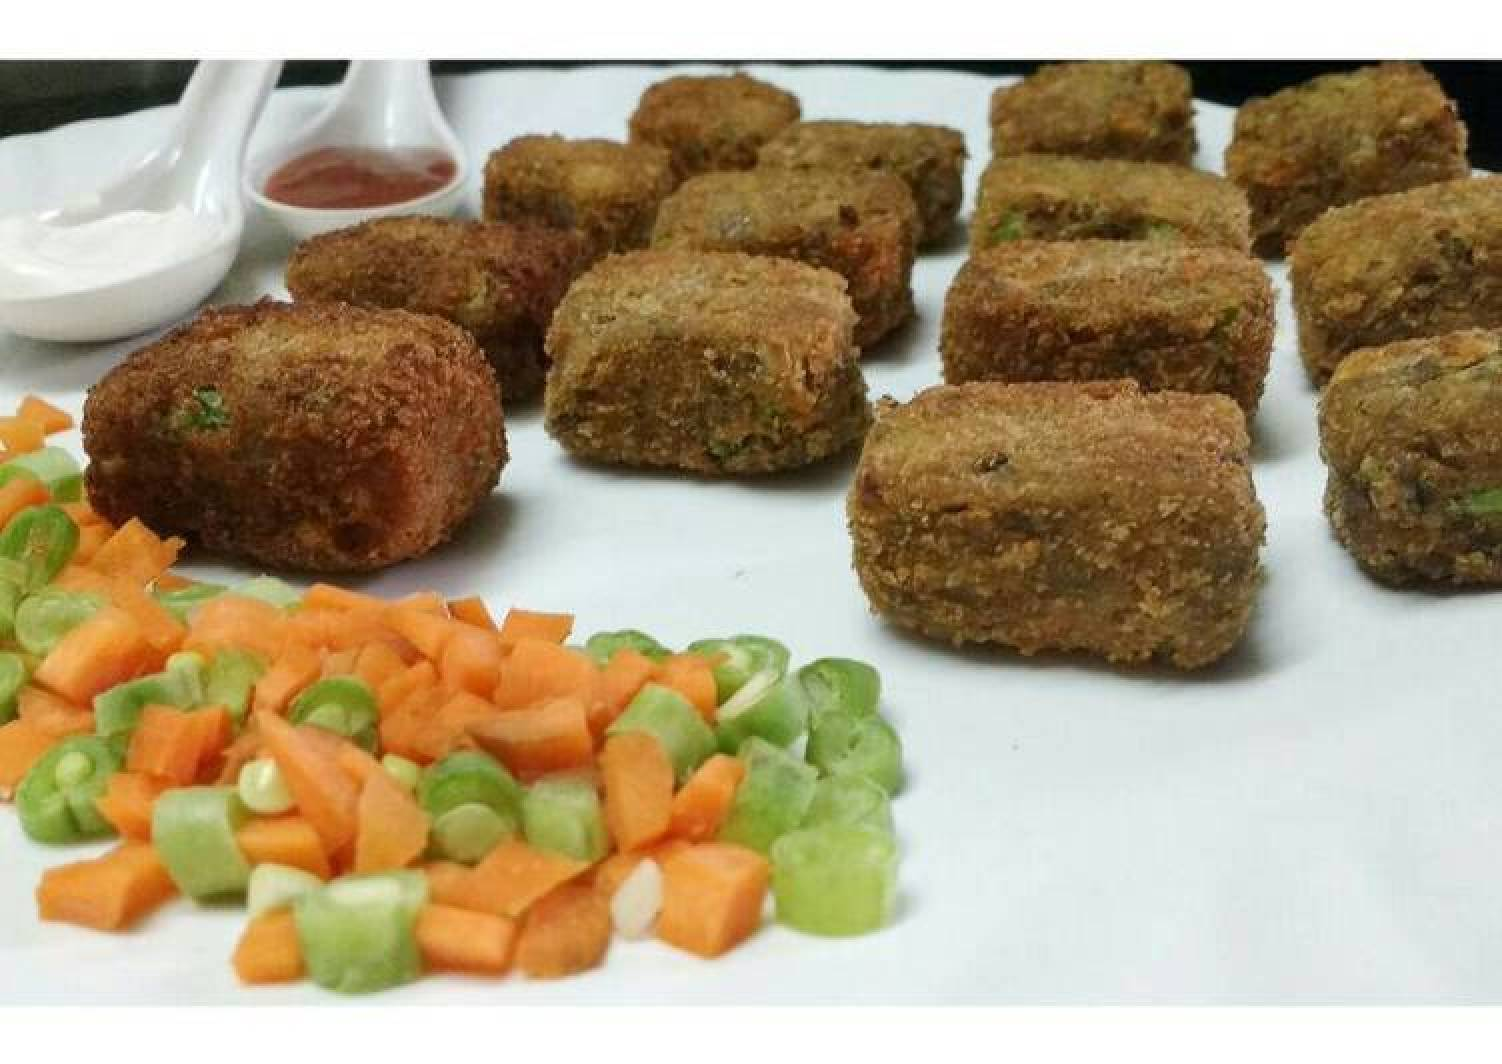 Mixed lentils beans veg nuggets